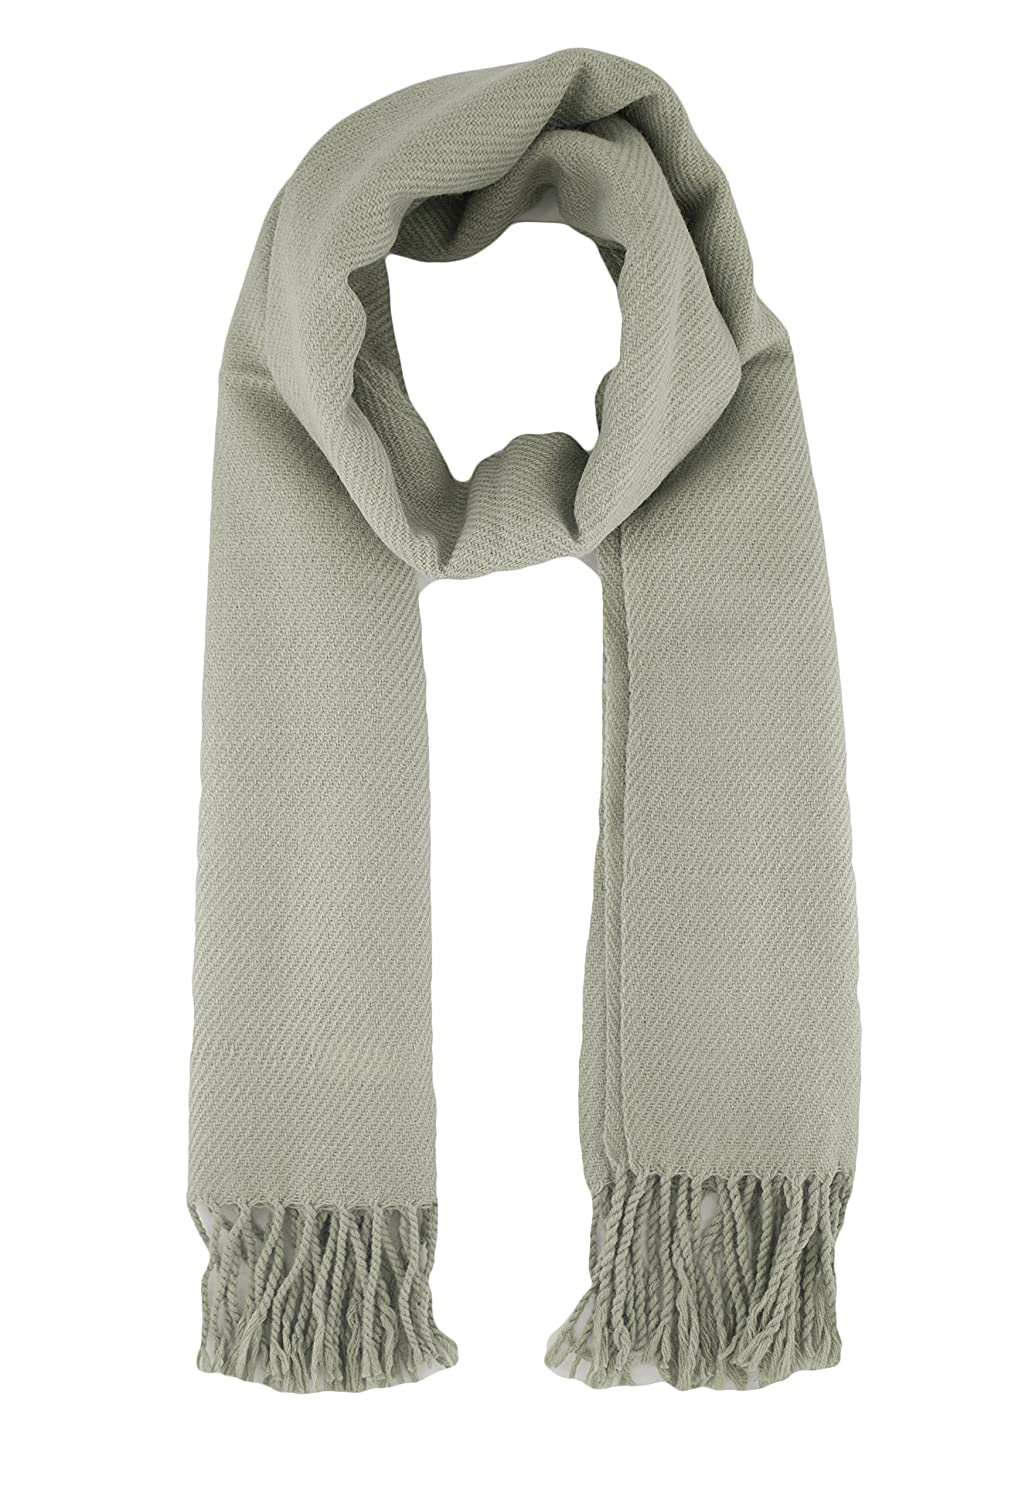 TooPhoto Unisex Solid Color Soft Warm Cashmere Feel Tassels Long Shawl Scarf AL1tpBMA00016FSHA